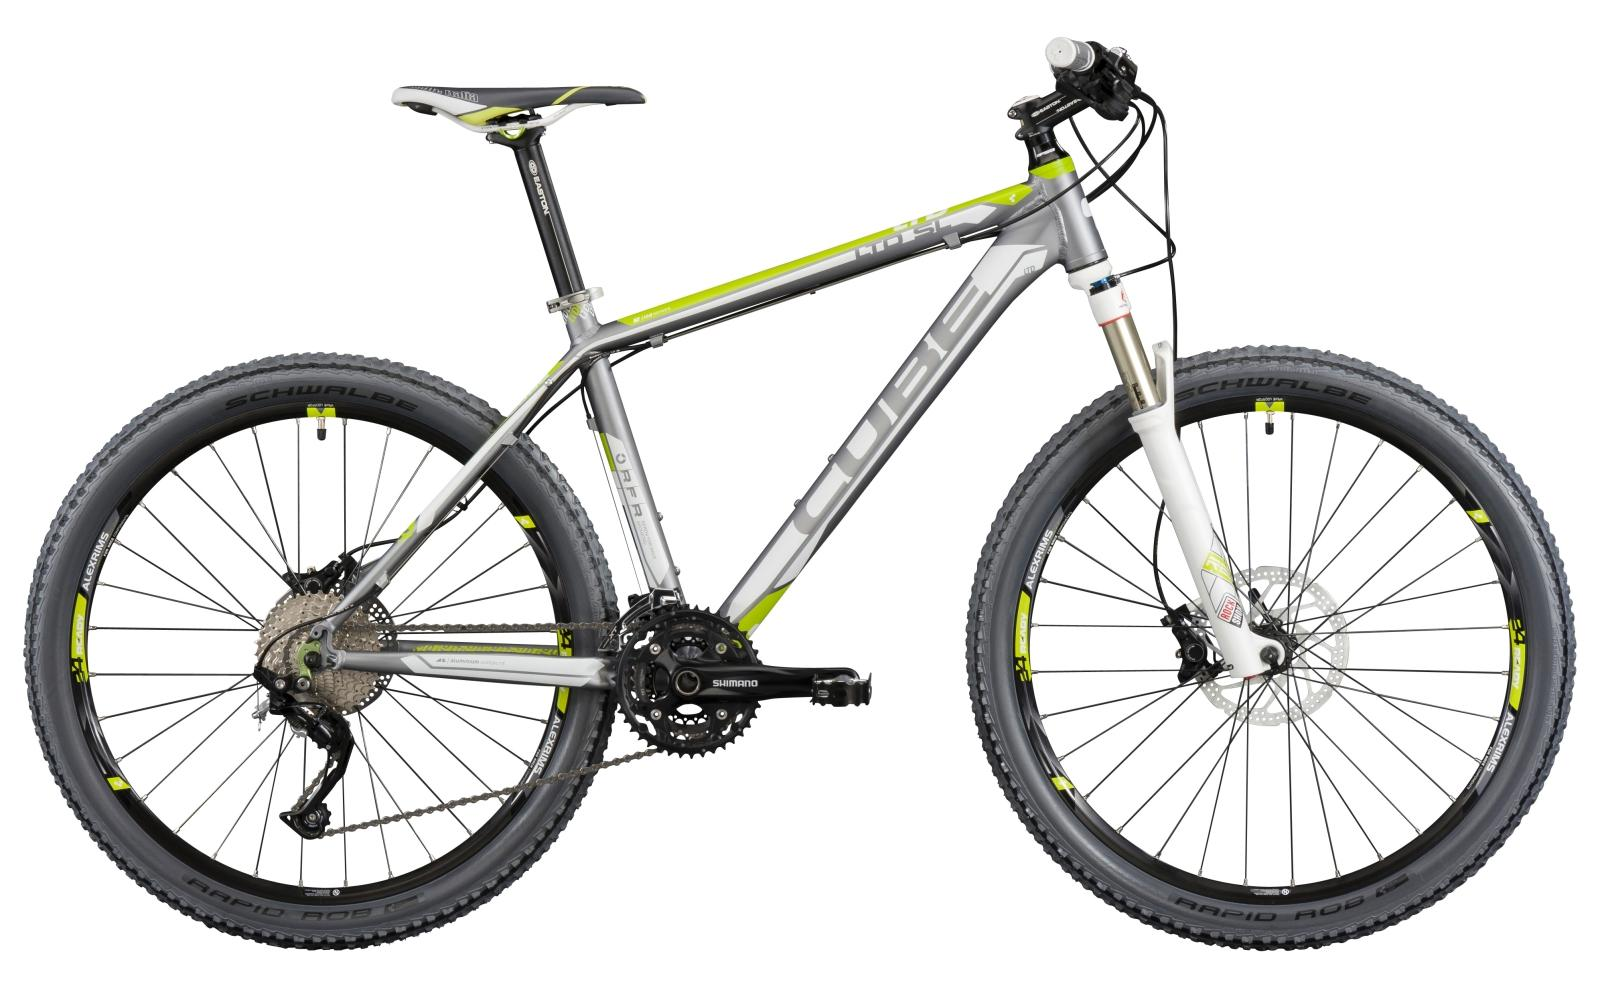 Hardtail For Someone 193cm Tall Budget 850